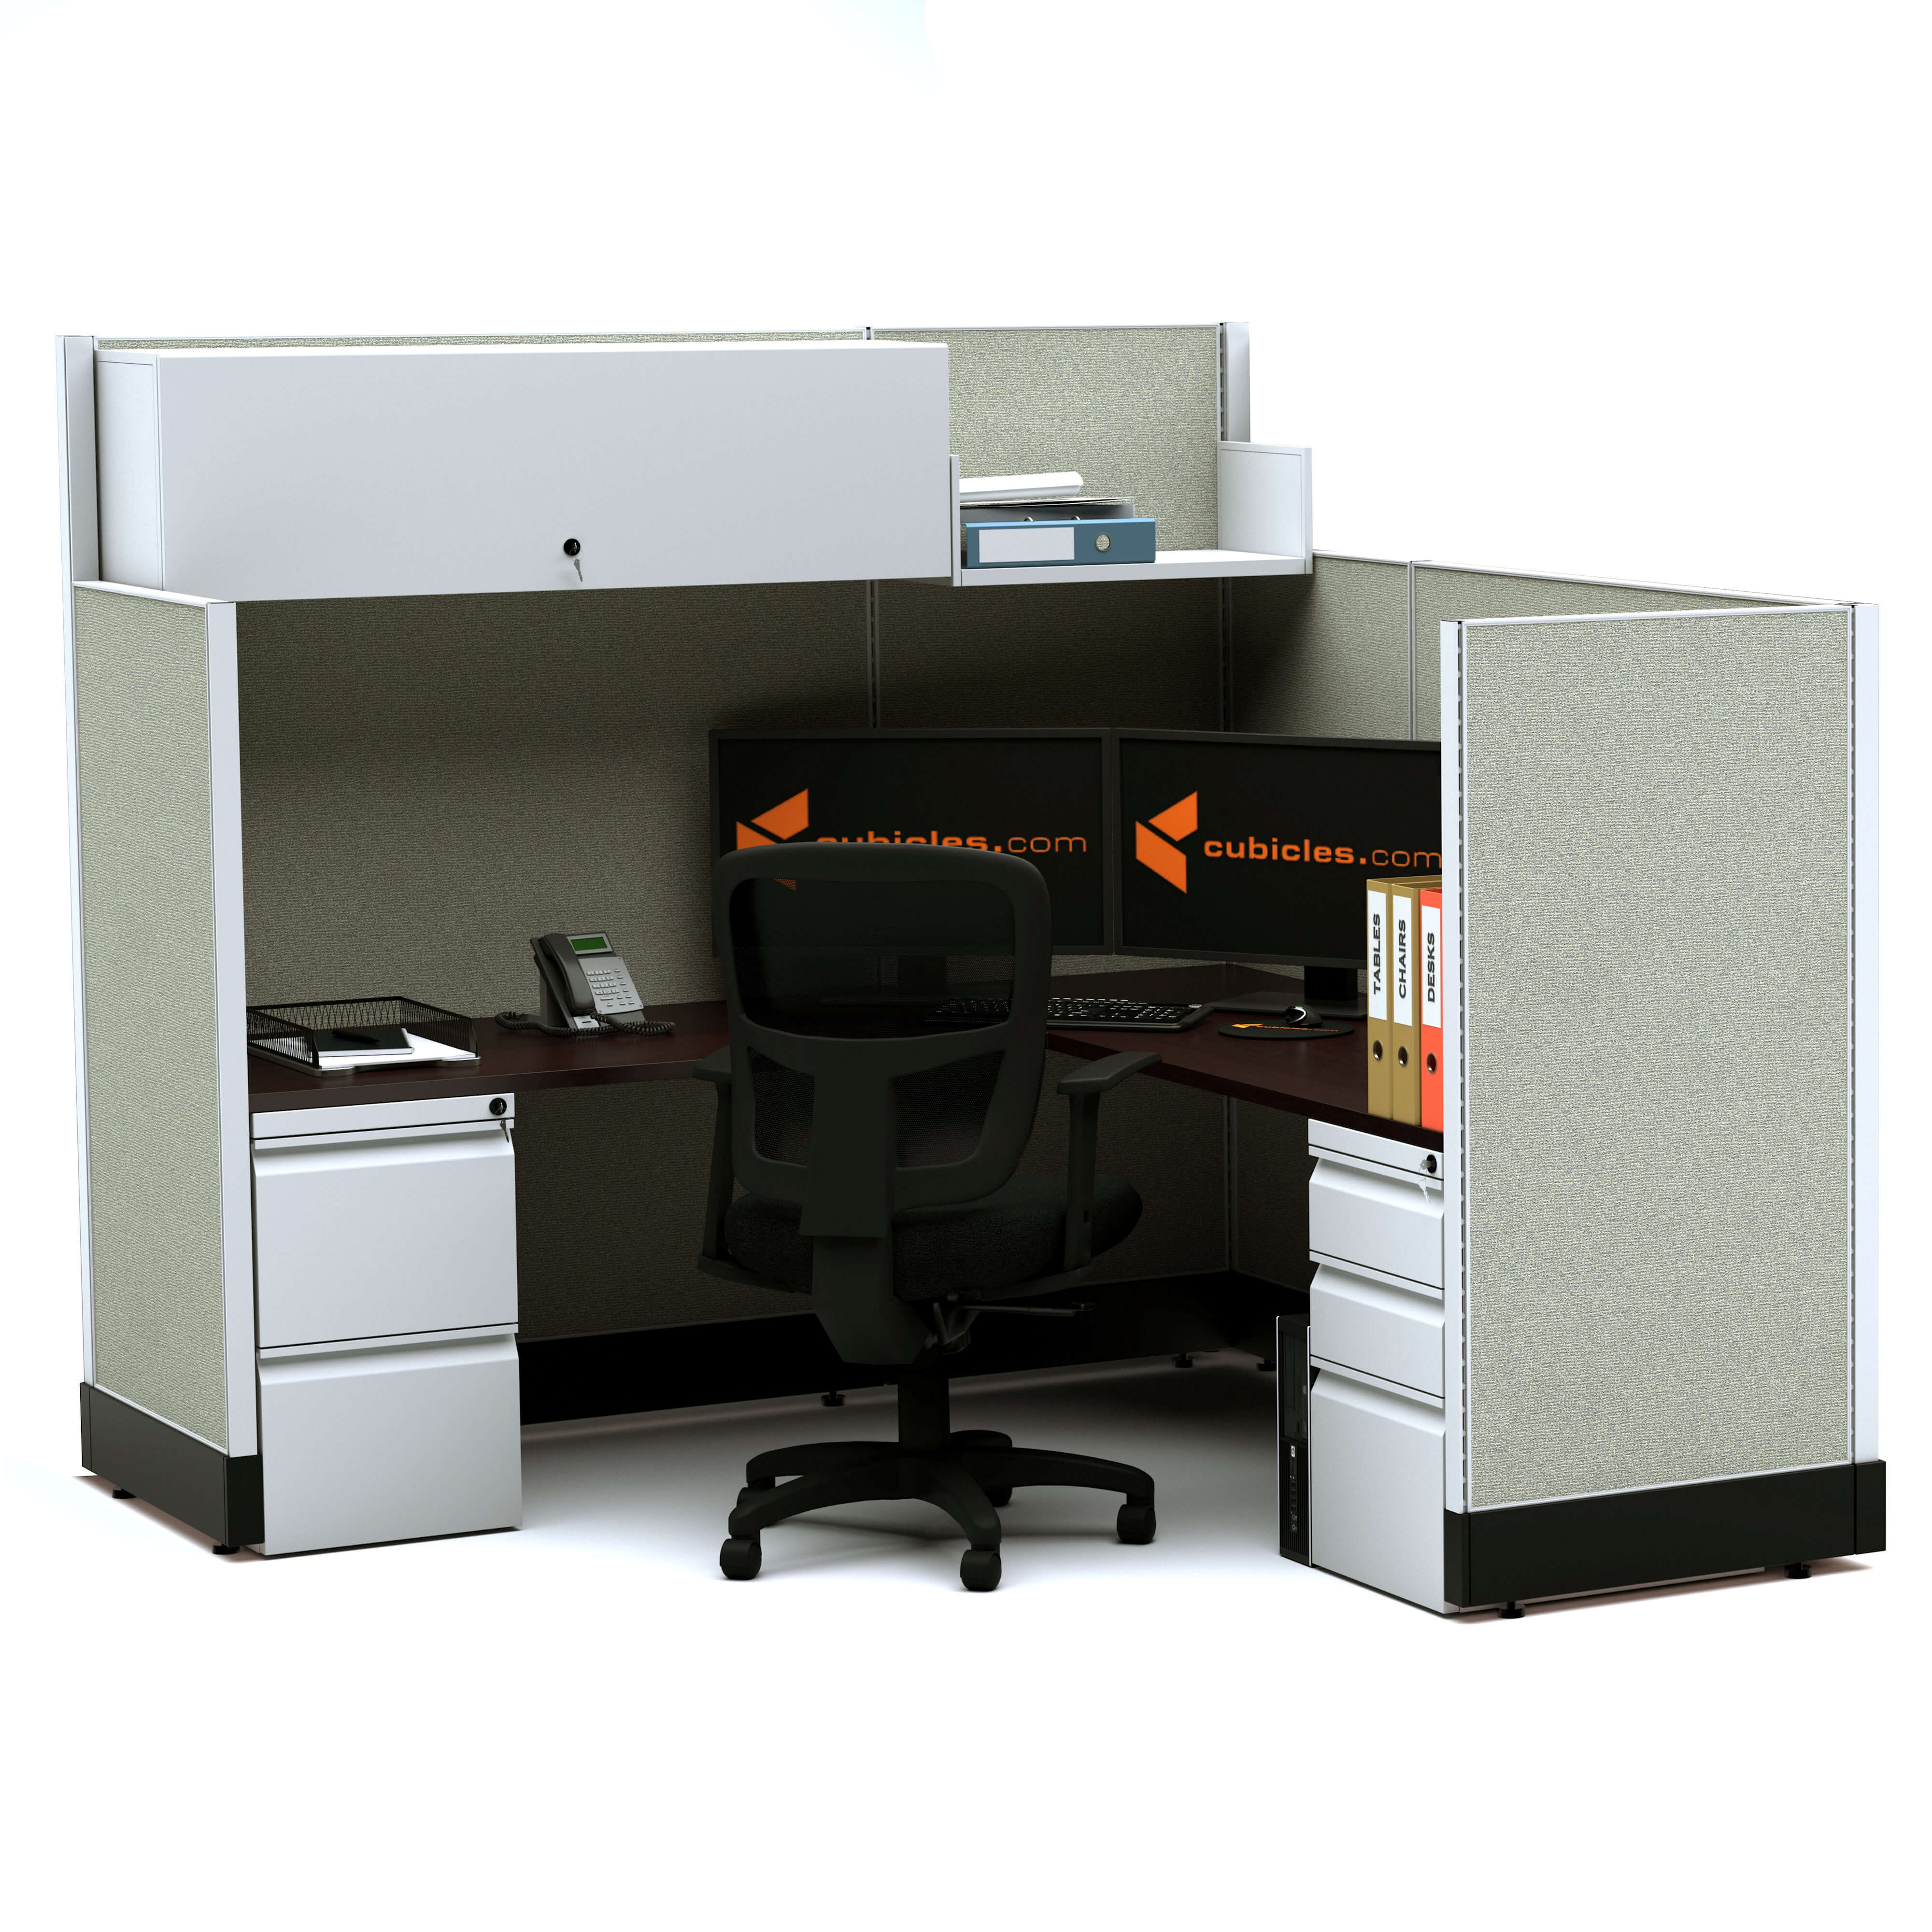 modular-office-furniture-modern-office-furniture-53-67-unpowered.jpg